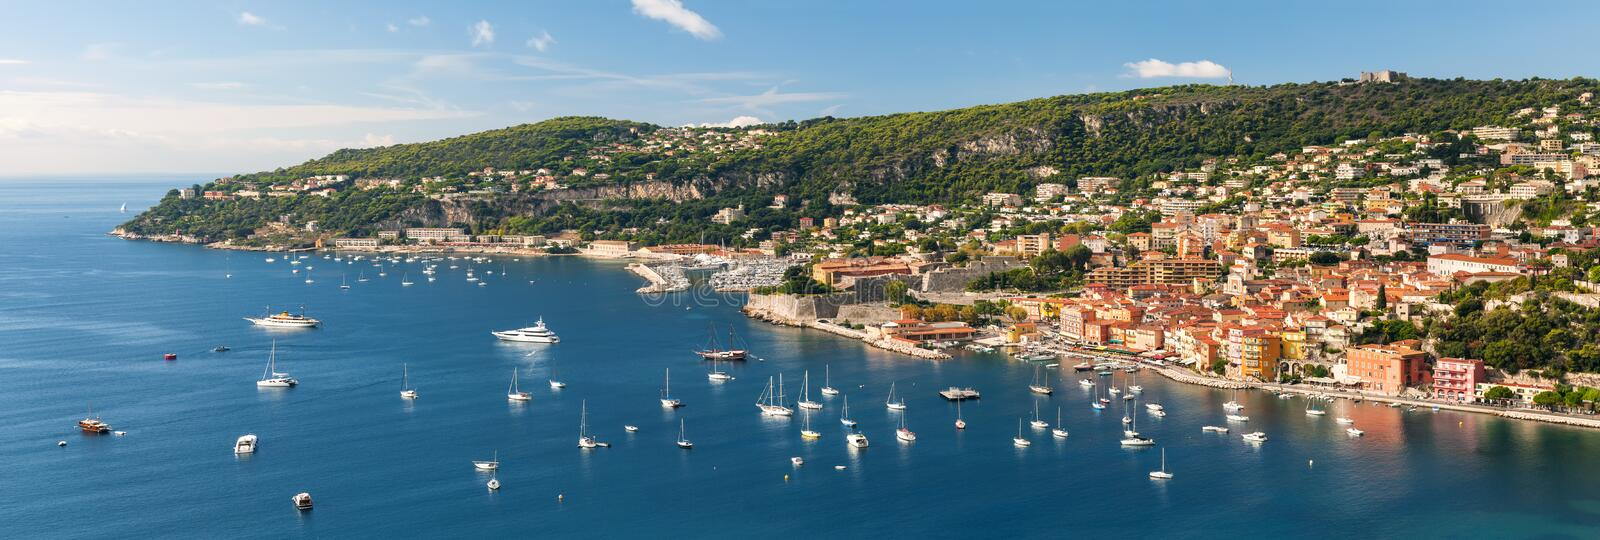 Villefranche-sur-Mer and Cap de Nice on French Riviera. Panoramic aerial view of French Riviera coast at Villefranche-sur-Mer harbour and Cap de Nice with royalty free stock photo